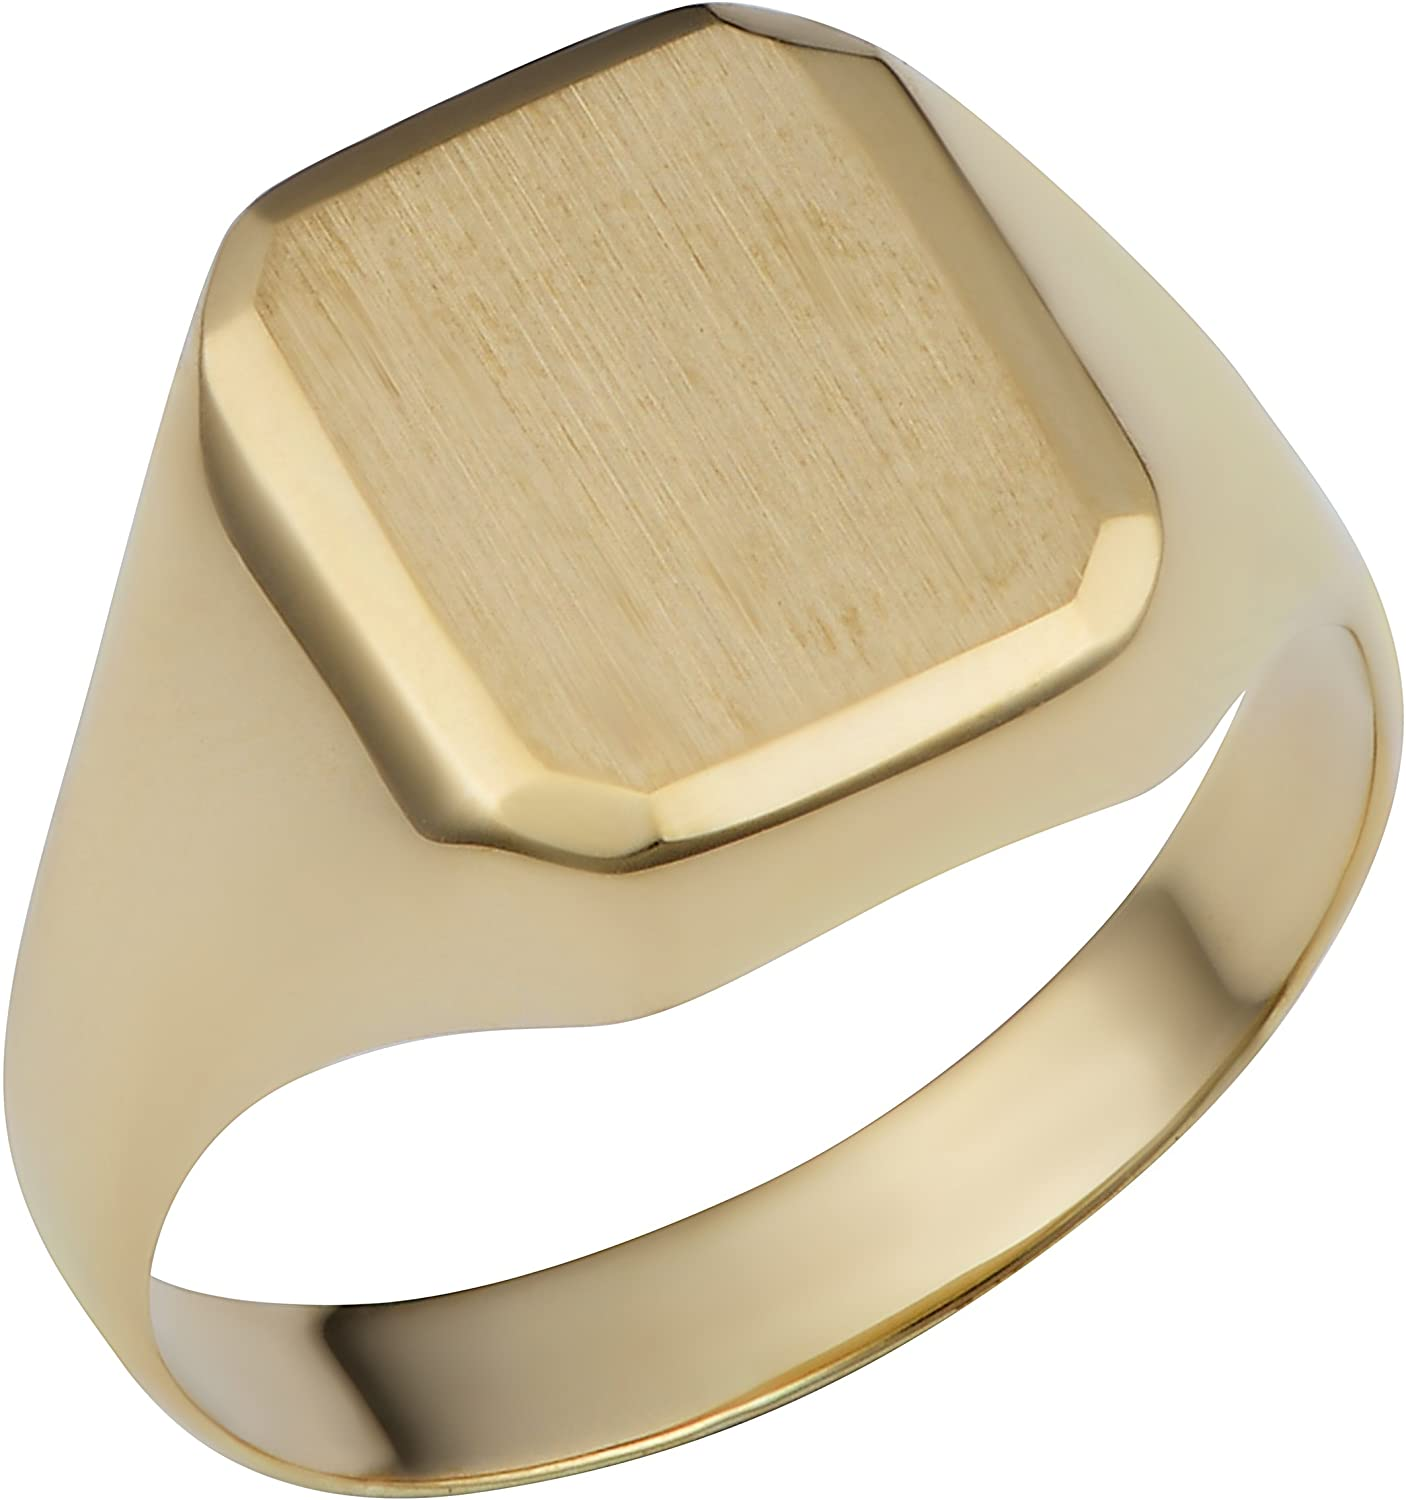 Kooljewelry 14k Yellow Gold Rectangular Signet Ring (mens or womens, 12.7 mm)